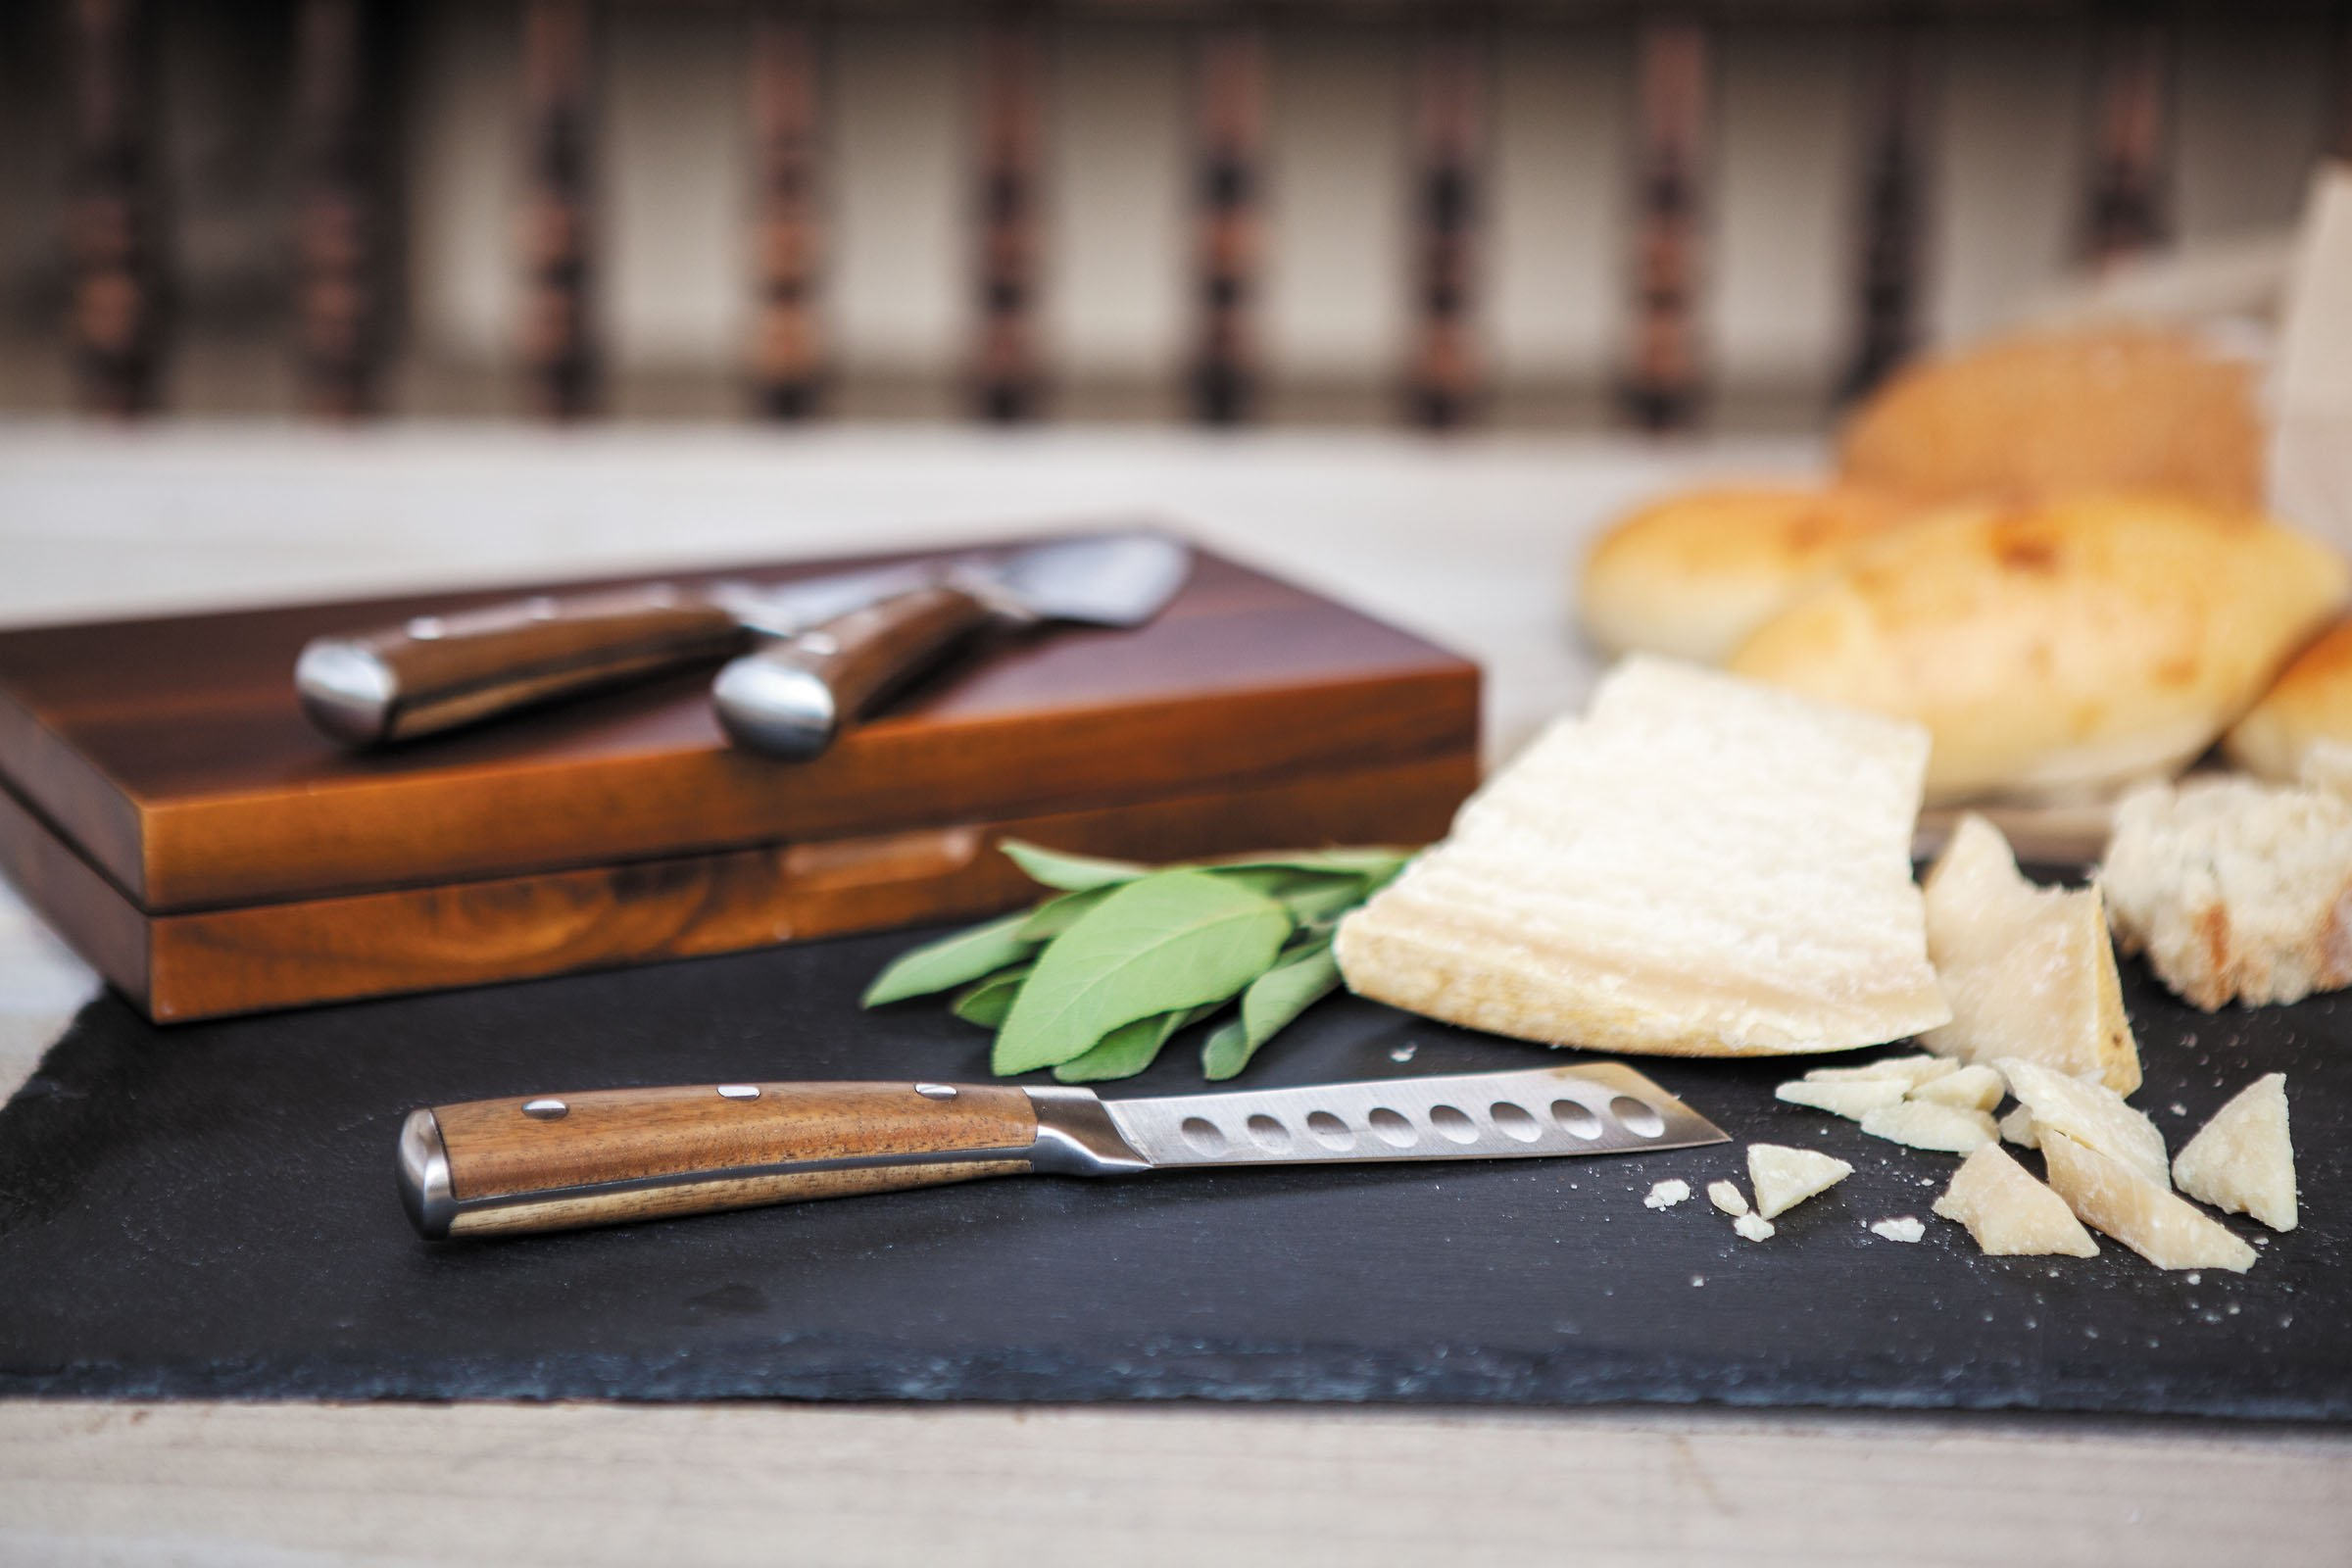 TOSCANA - a Picnic Time Brand Fabio Viviani Tridente Boxed Cheese Knives, Set of 3 by TOSCANA - a Picnic Time brand (Image #2)